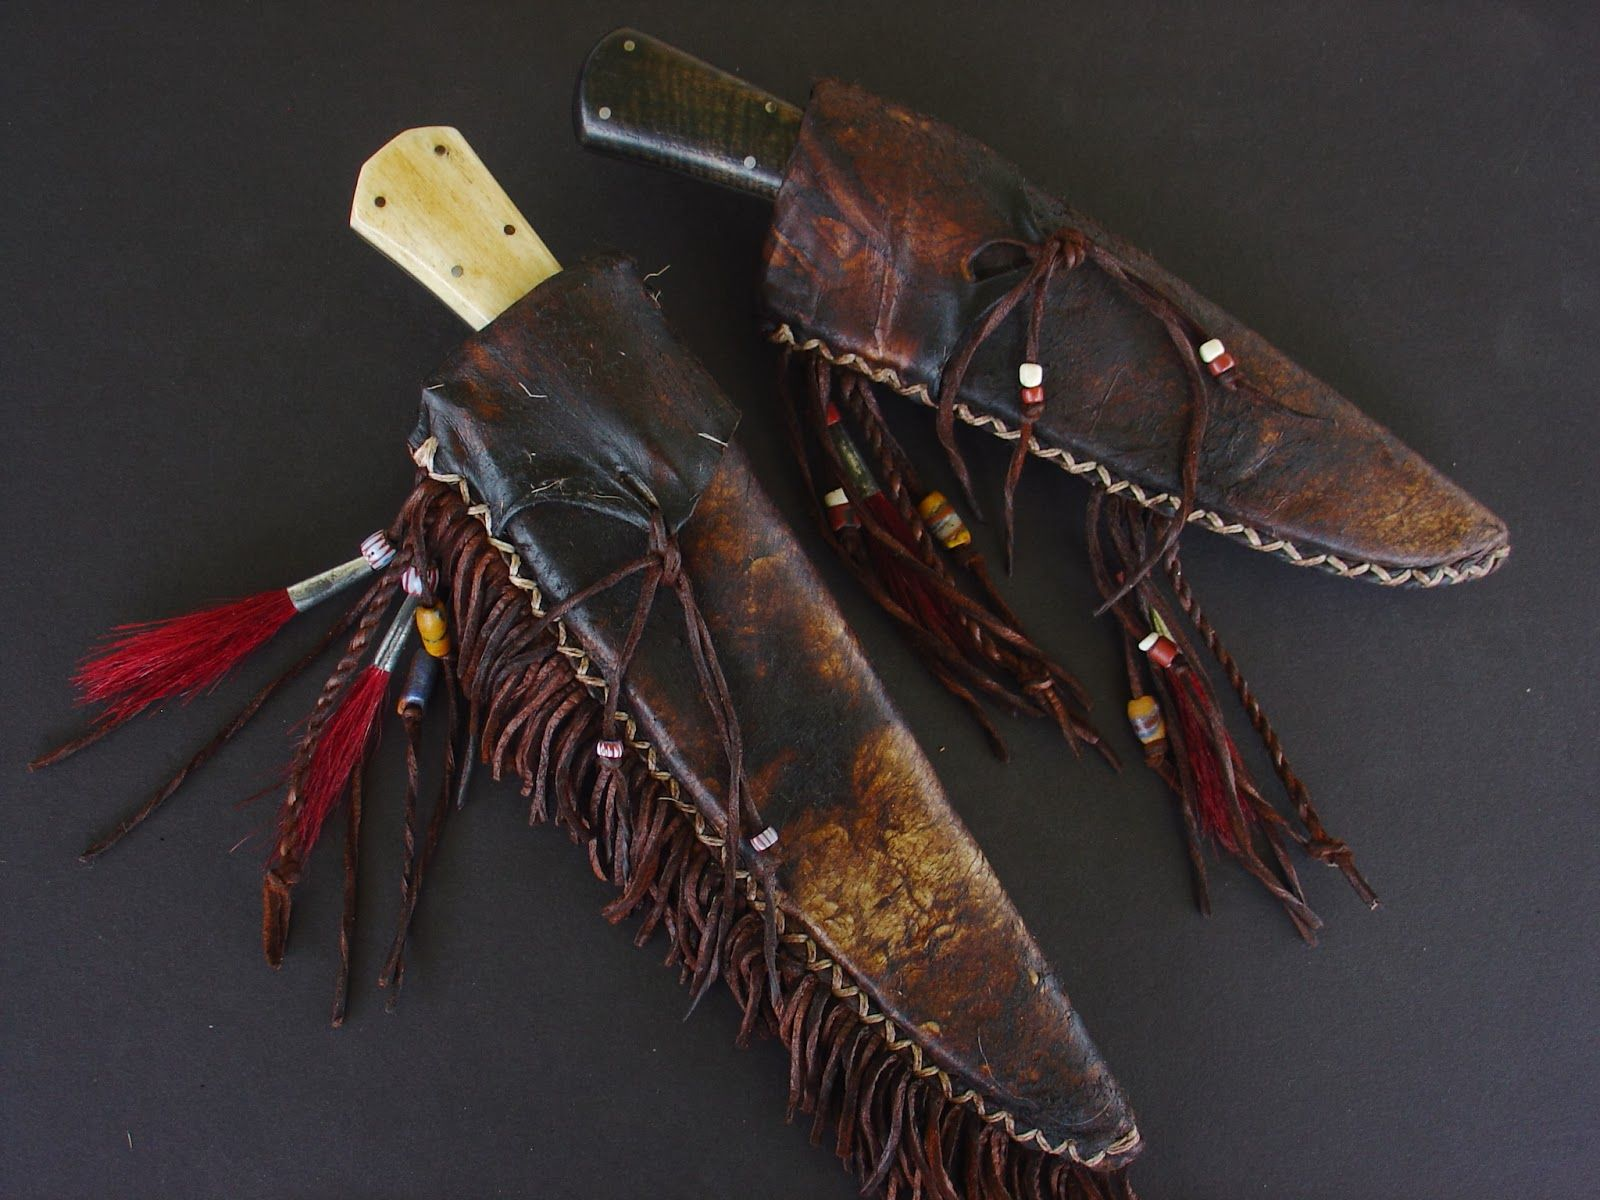 Rich McDonald Knives with Jeanne McDonald Sheaths (With